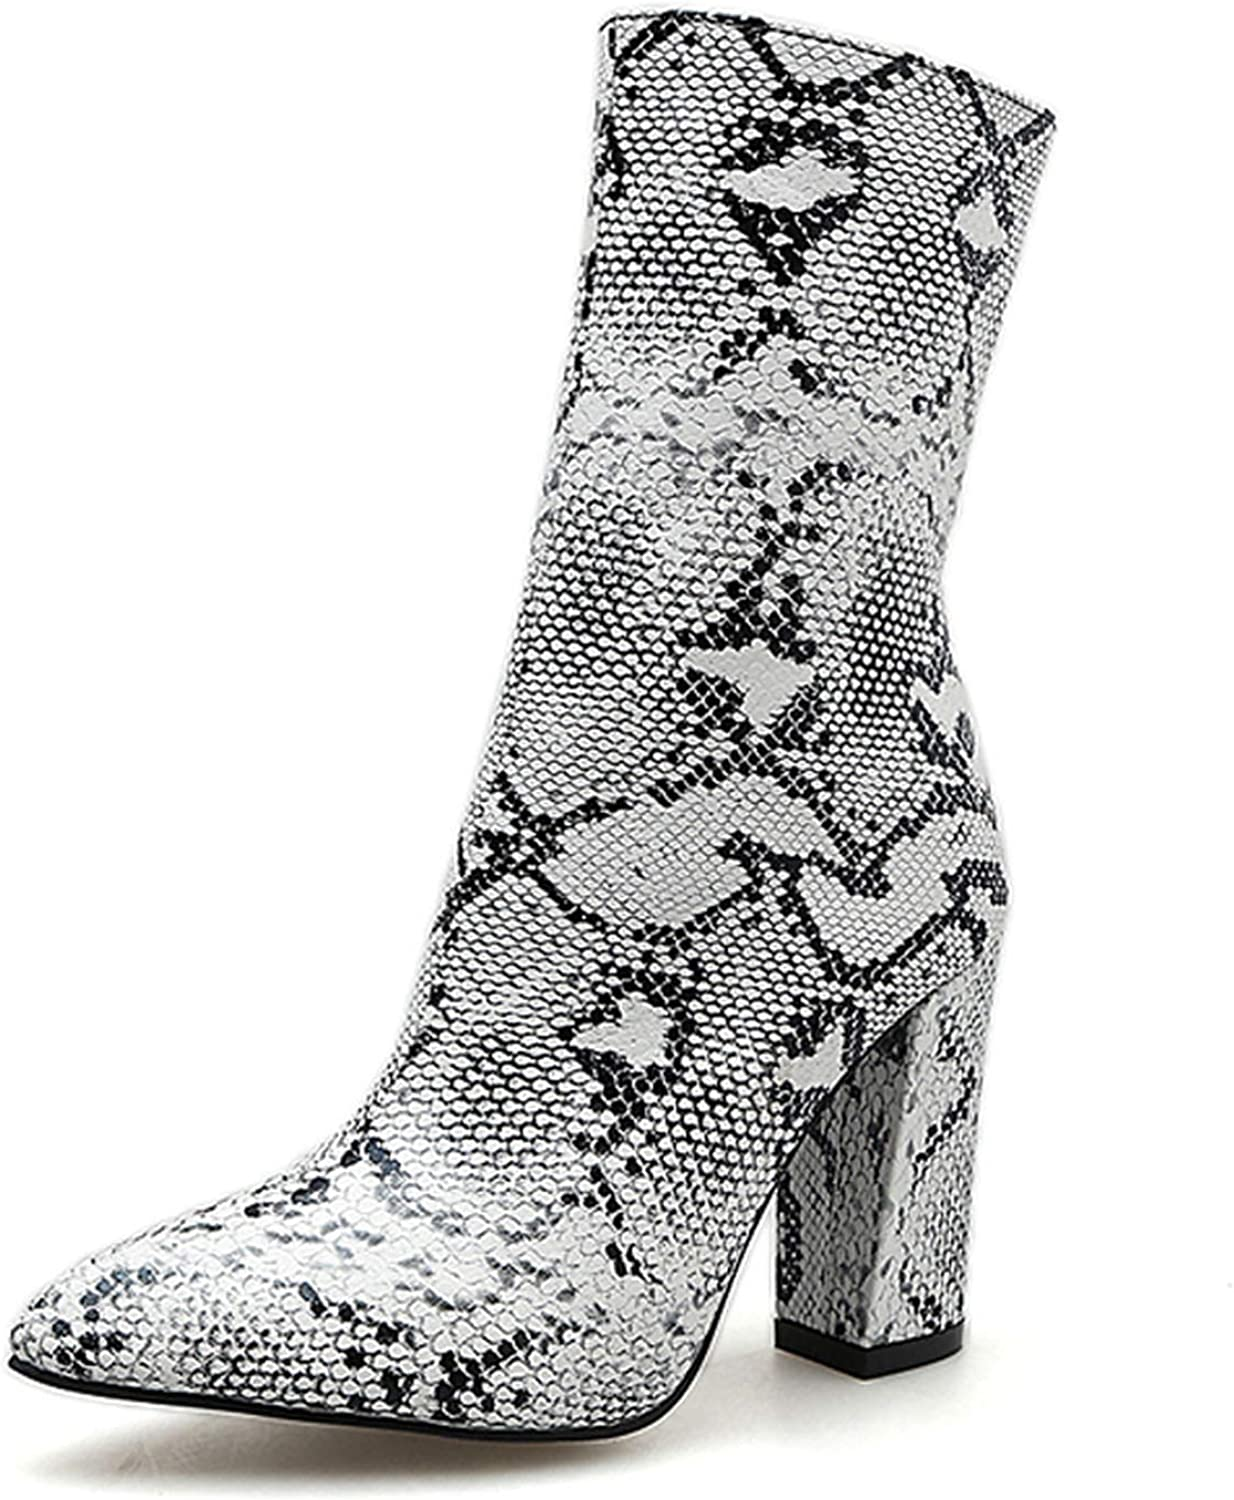 IOJHOIJOIJOIJMO Print Snake Pu Women Ankle Boots Zip Pointed Toe High Heels Female Boot Party shoes Women 2019 Winter Size 35-42